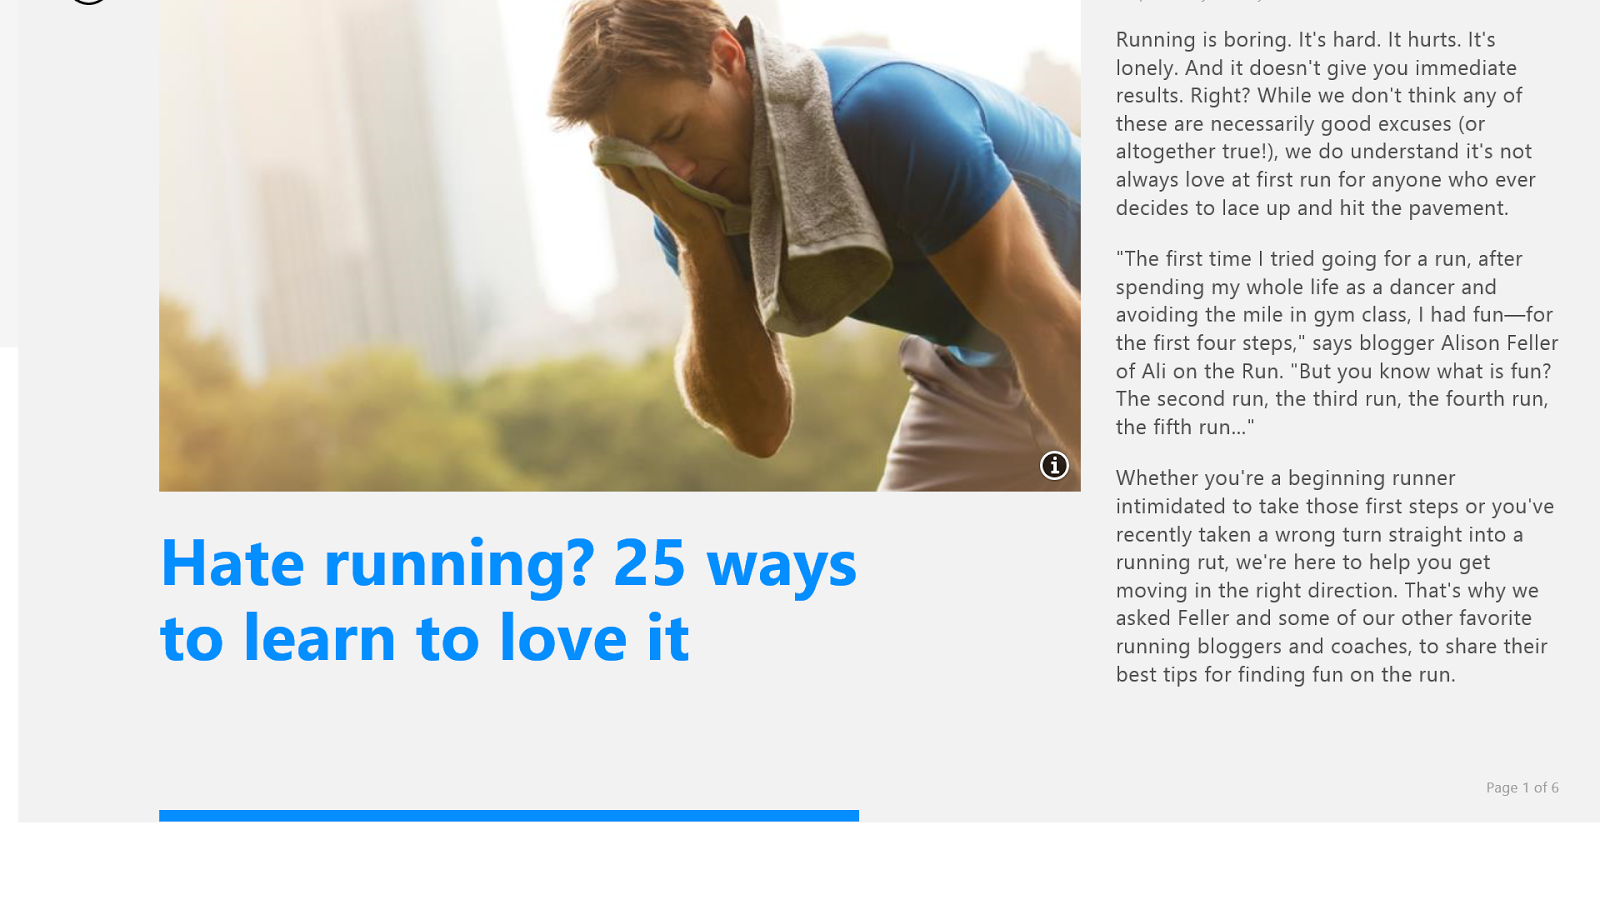 Windows 8.1, health, fitness, technology, Microsoft, fitbit, garmin, map my run, running, exercise, nutrition, Windows, App store